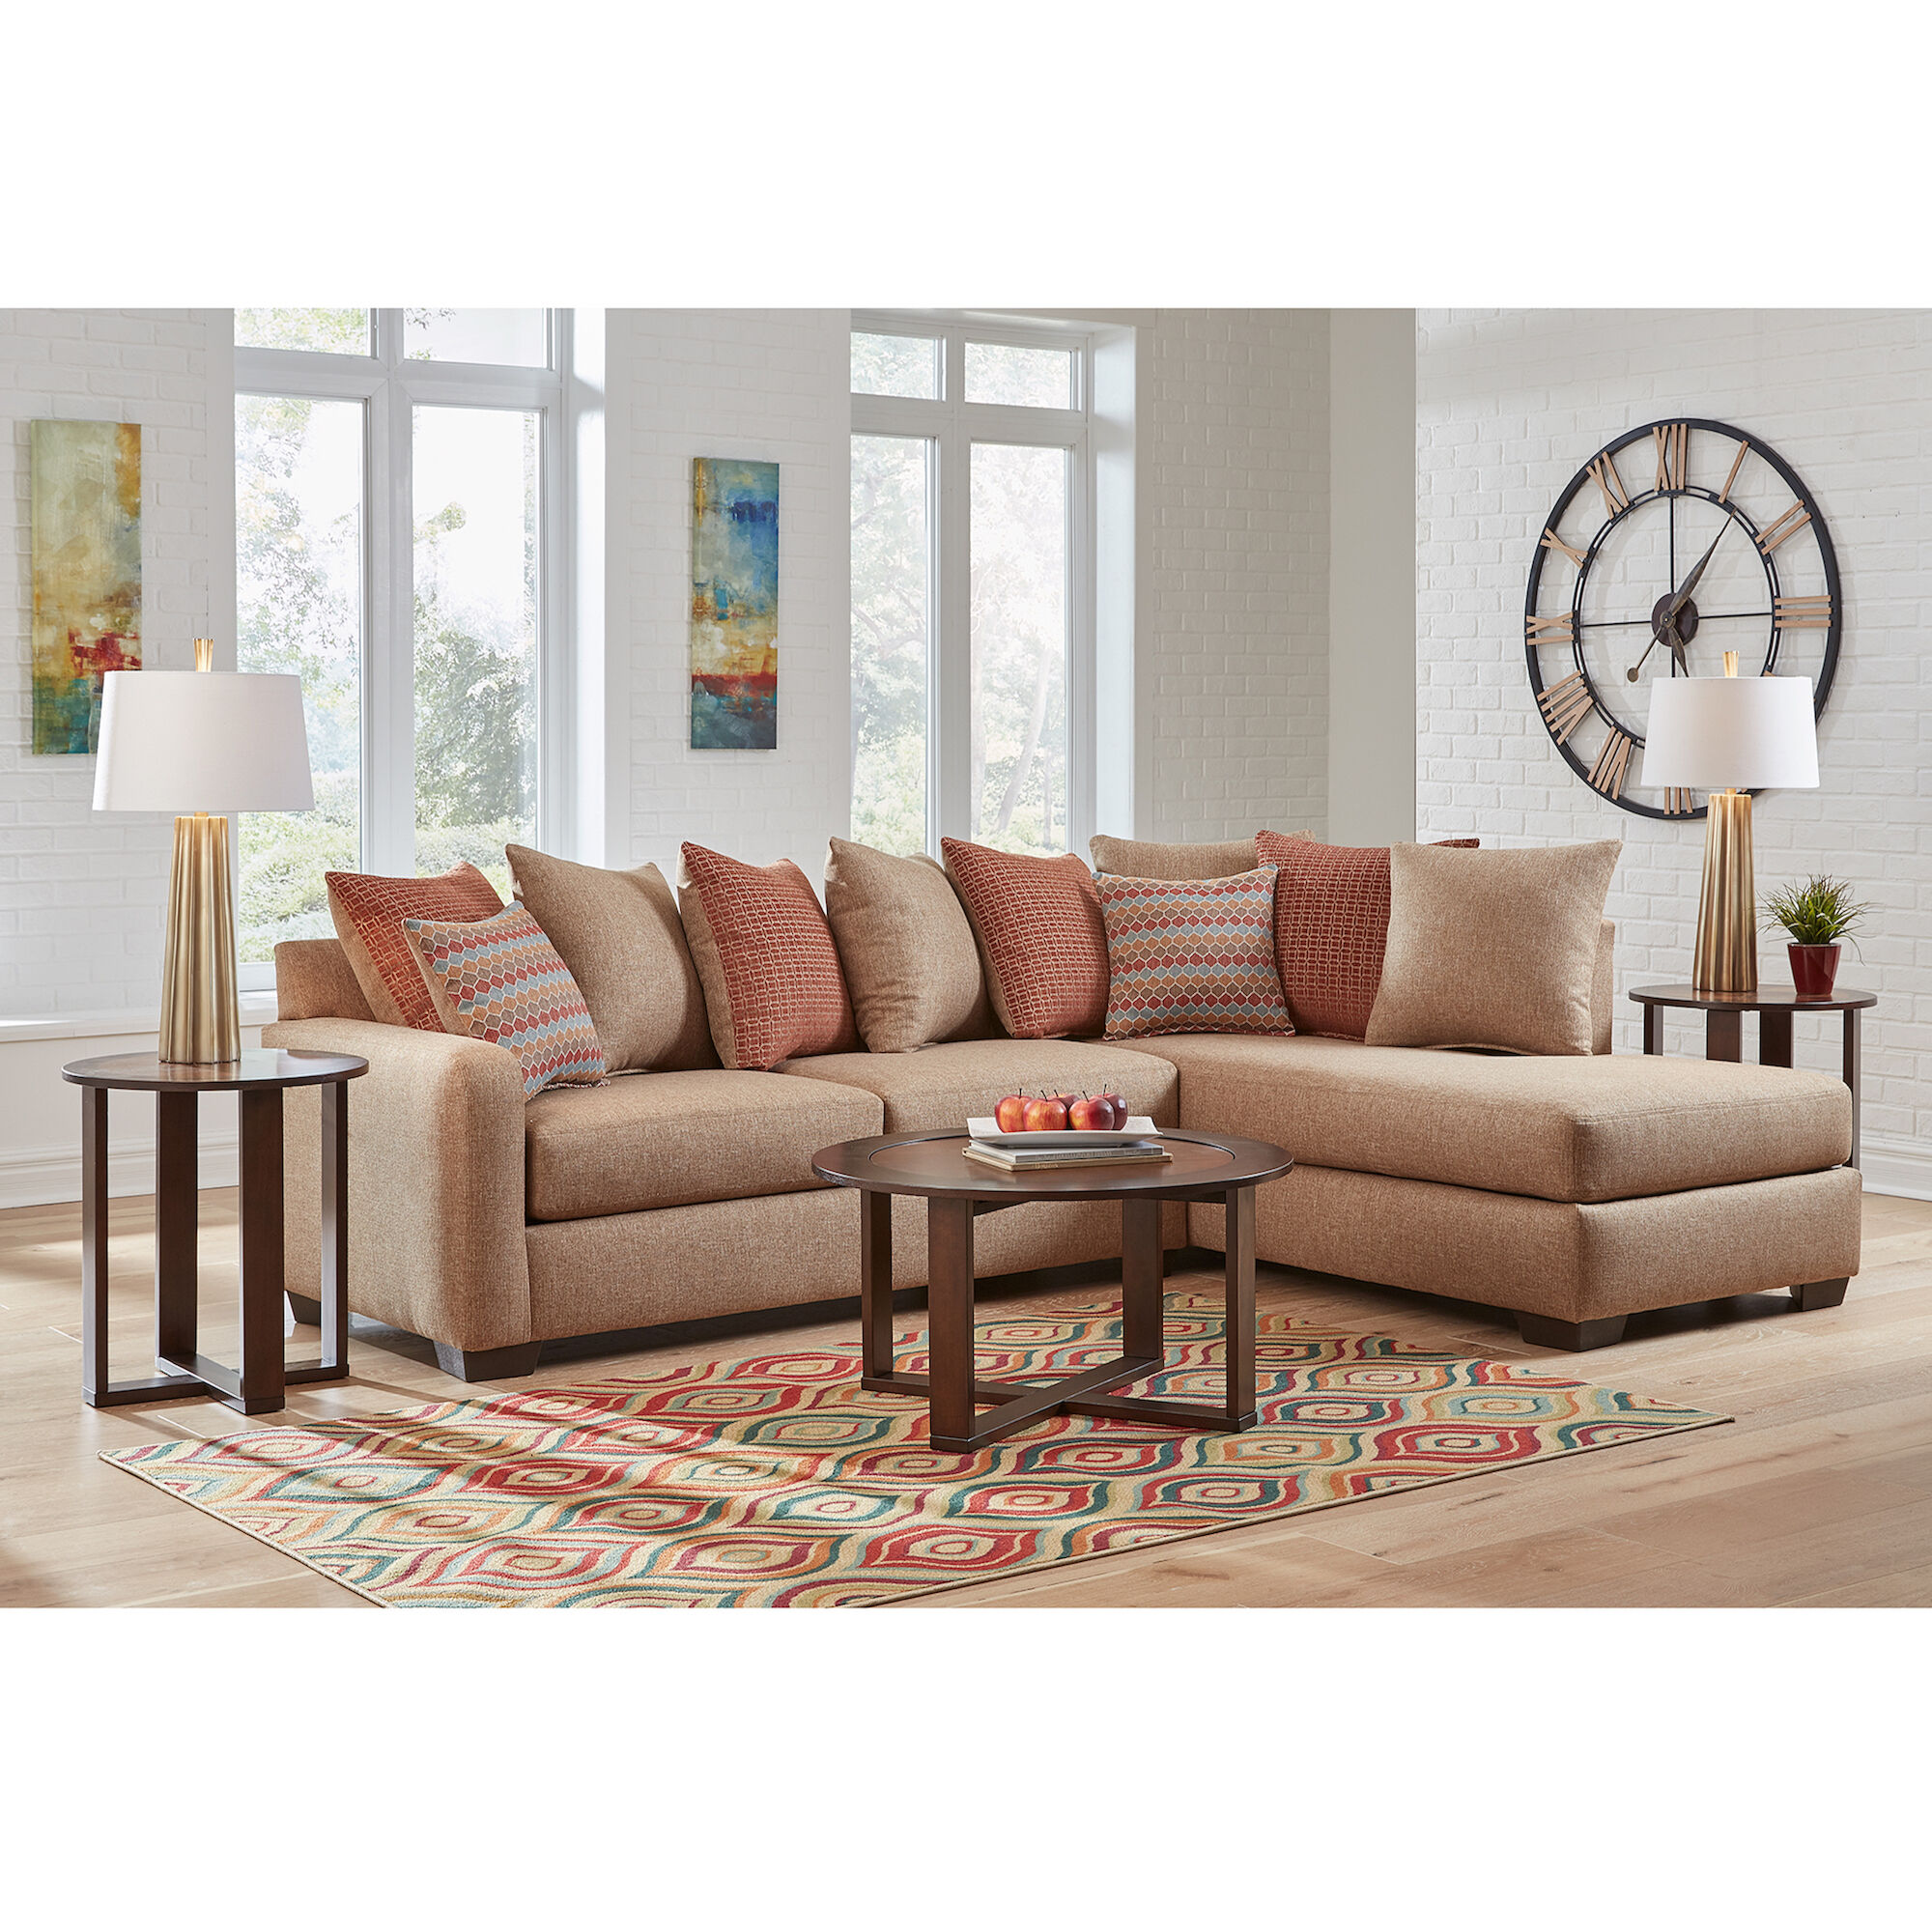 woodhaven living room furniture ideas for paint colors in industries sets 7 piece casablanca collection